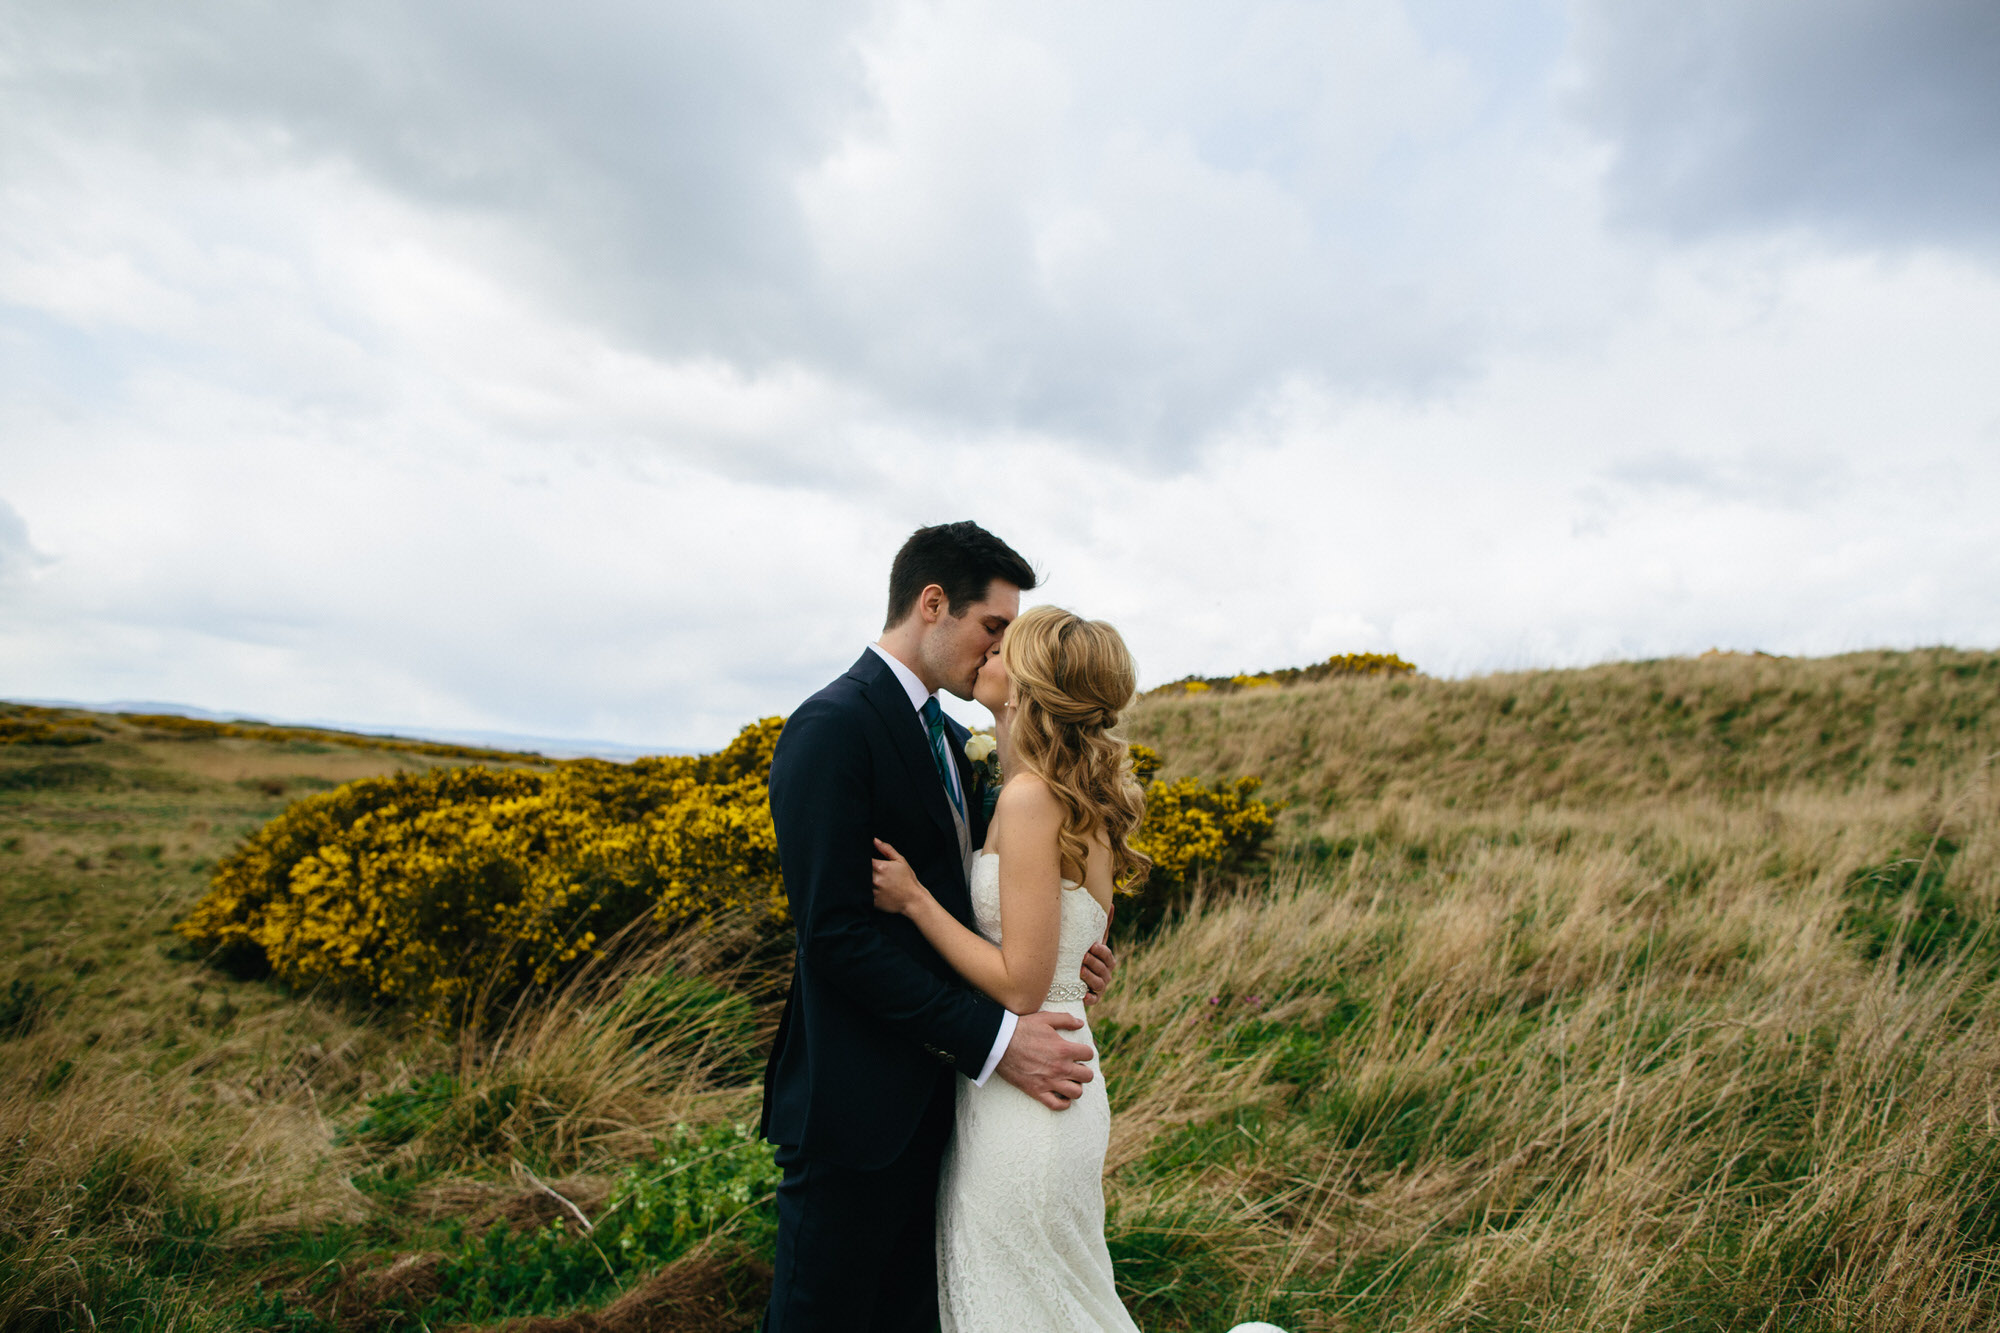 Alternative Natural Quirky Wedding Photographs UK Scotland 038.jpg